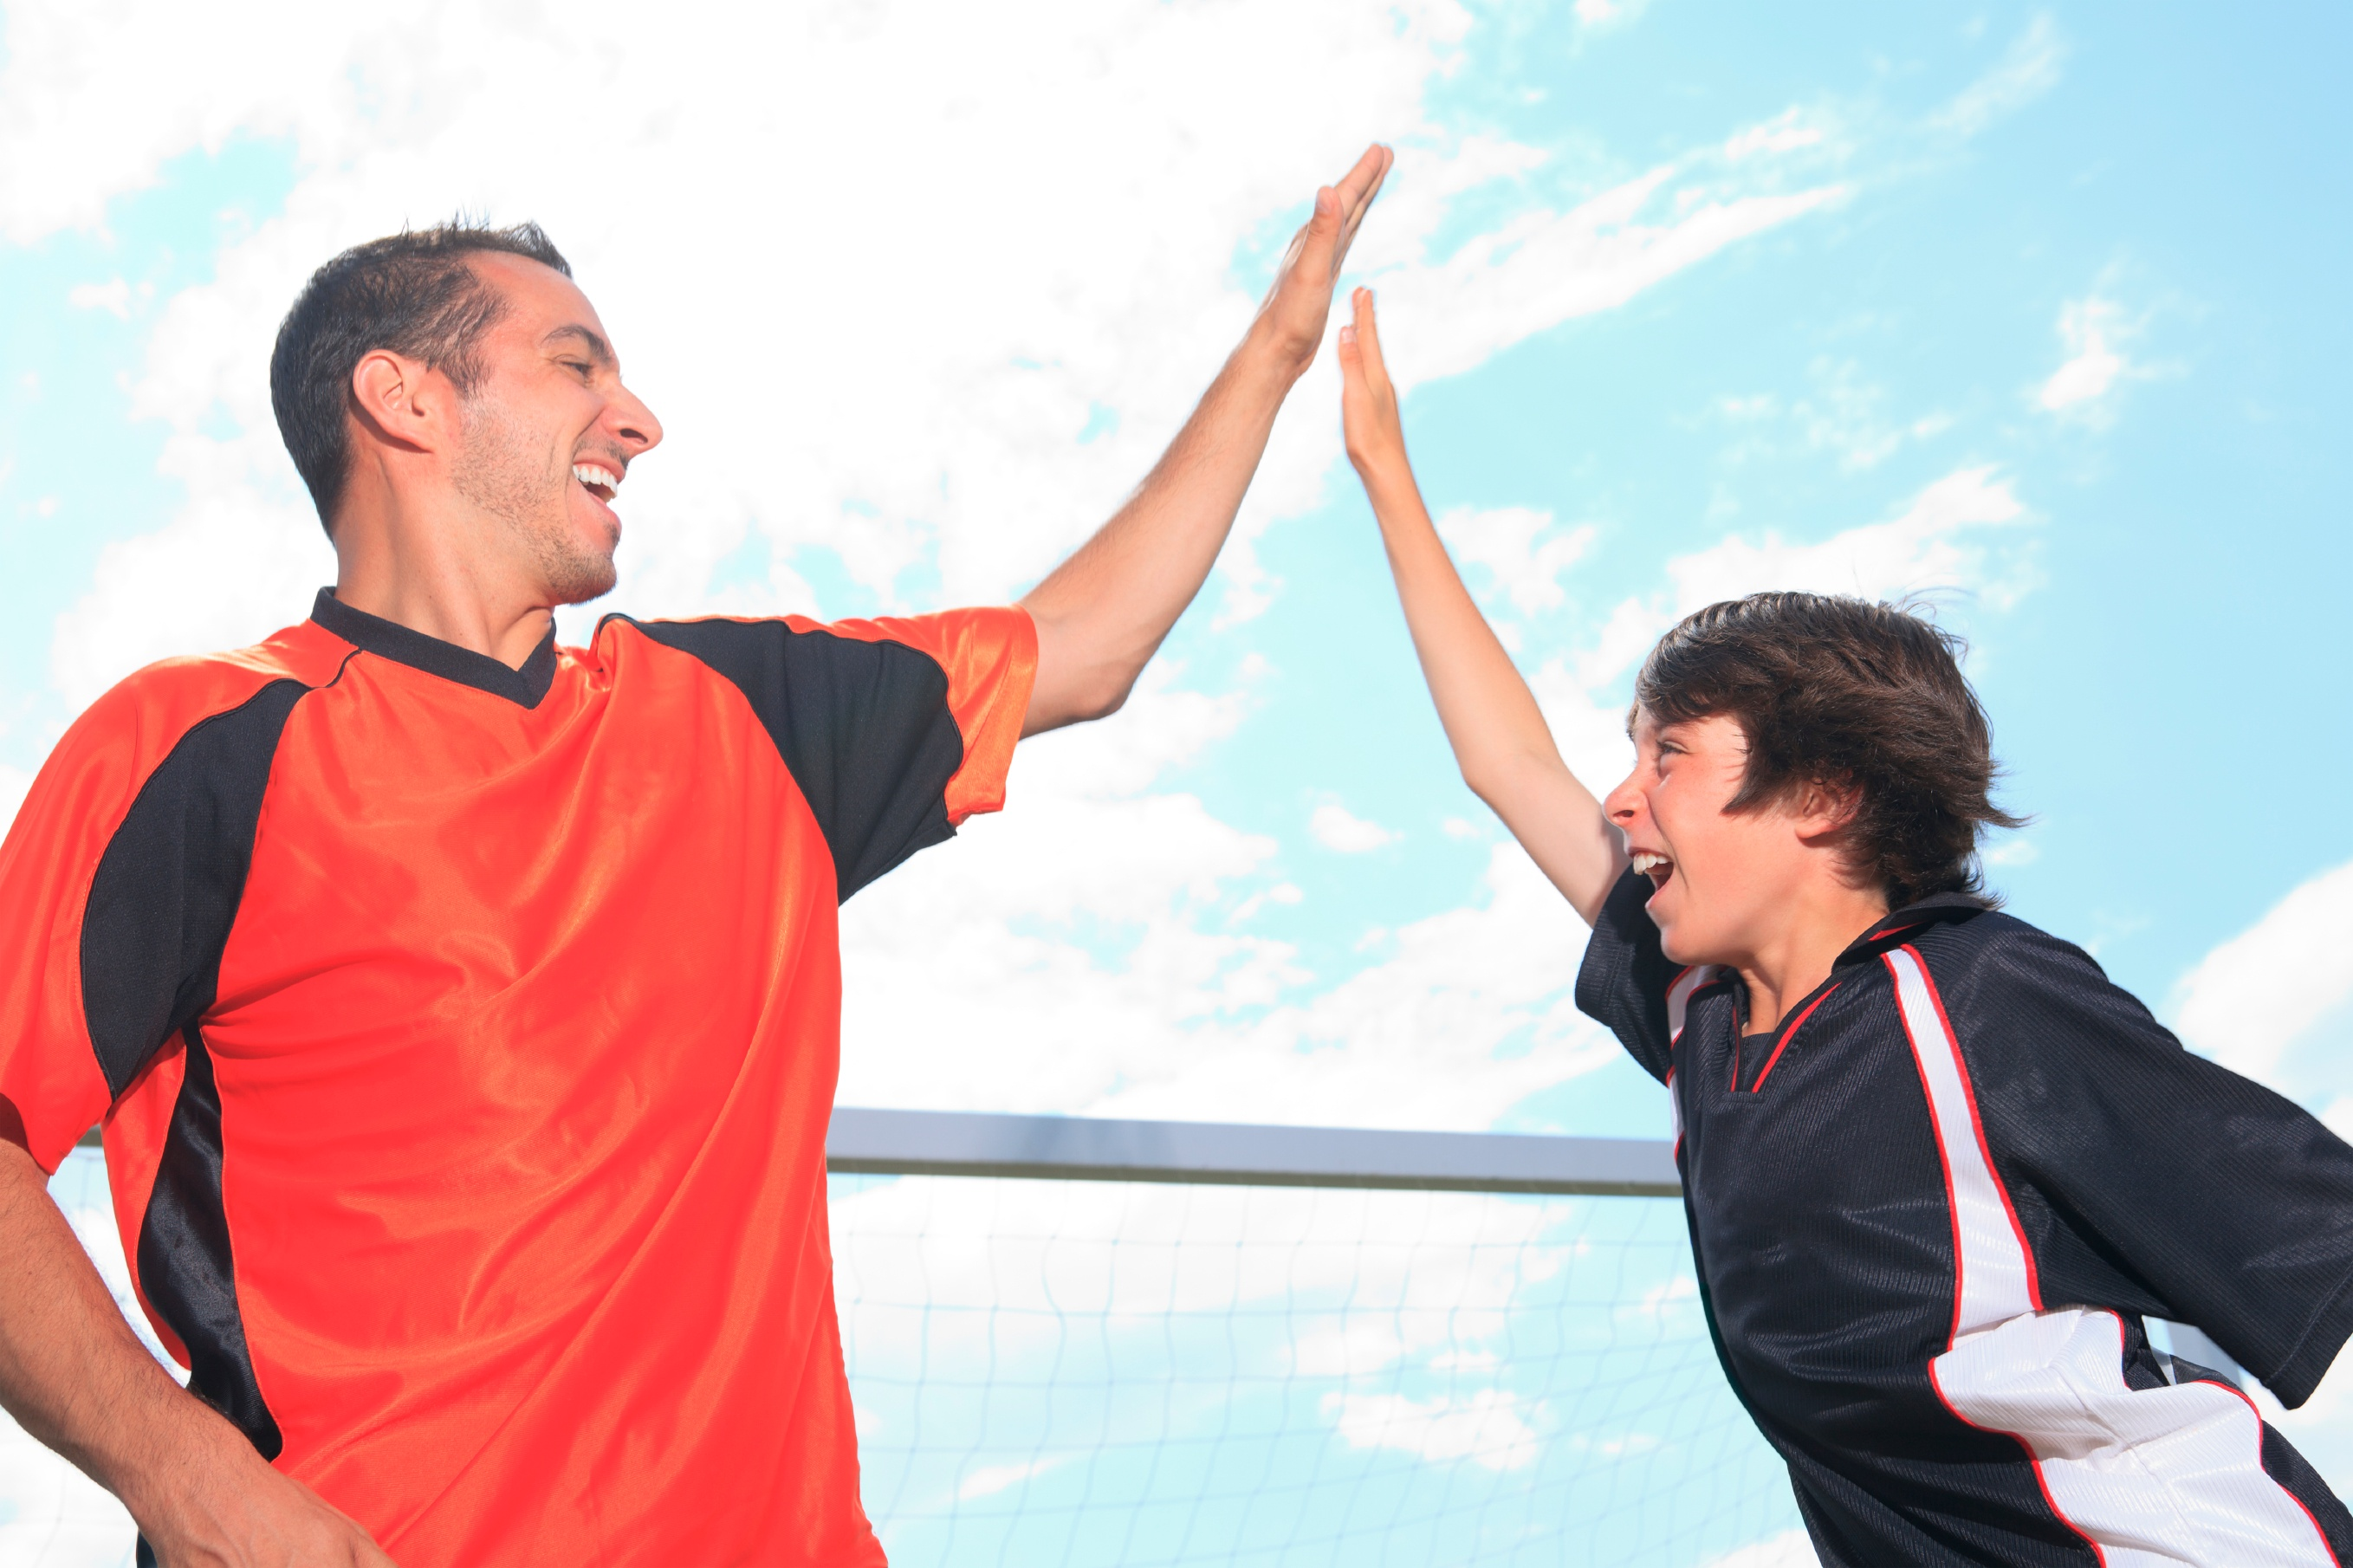 Father and son expressing elevated emotion as they high five each other